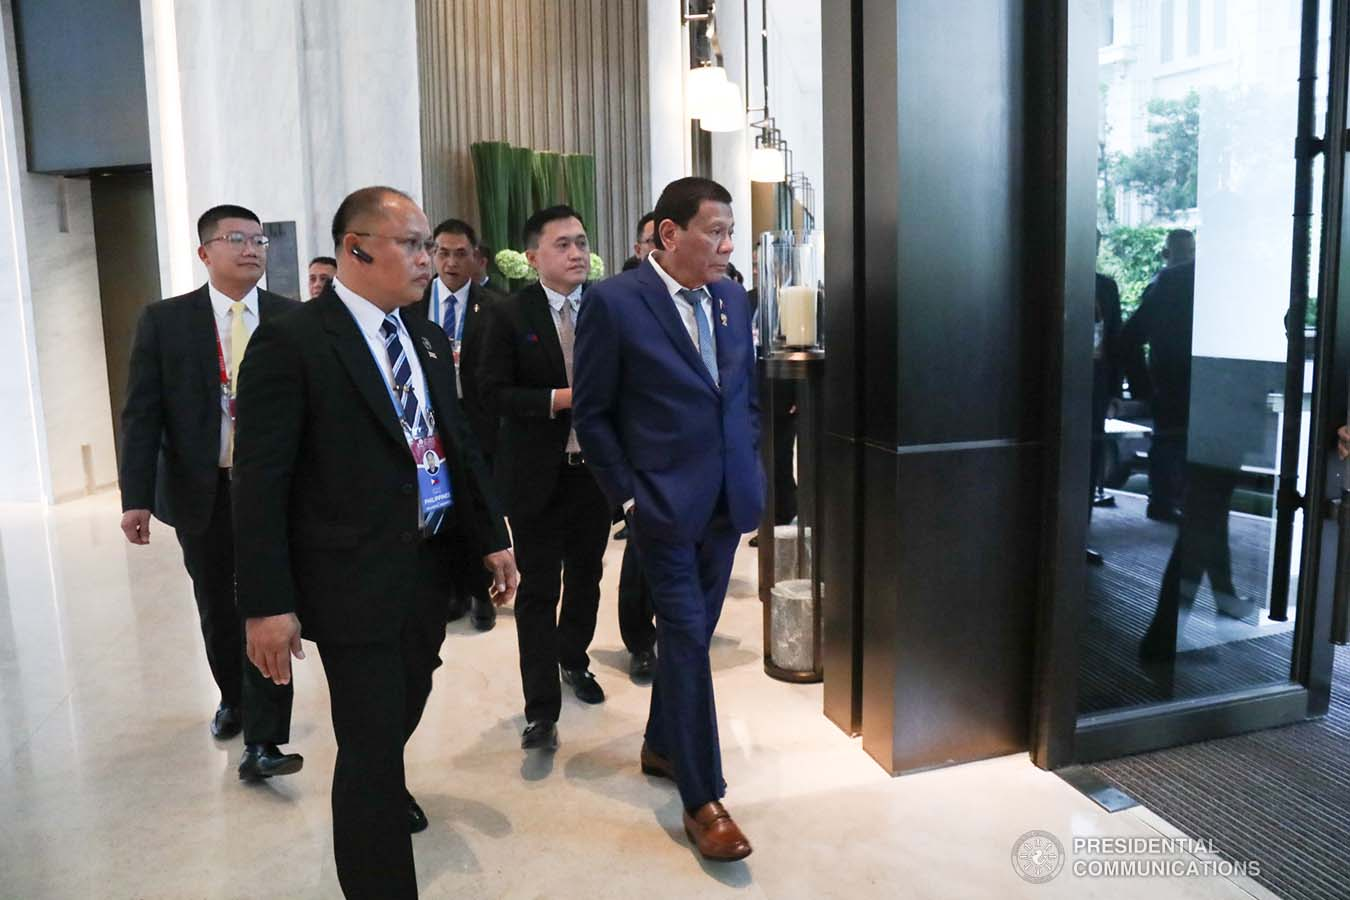 President Rodrigo Roa Duterte prepares to head over to Impact Exhibition and Convention Center in Nonthaburi, Thailand for his attendance to the 35th Association of Southeast Asian Nations (ASEAN) Summit Plenary on November 2, 2019. AVITO DALAN/PRESIDENTIAL PHOTO